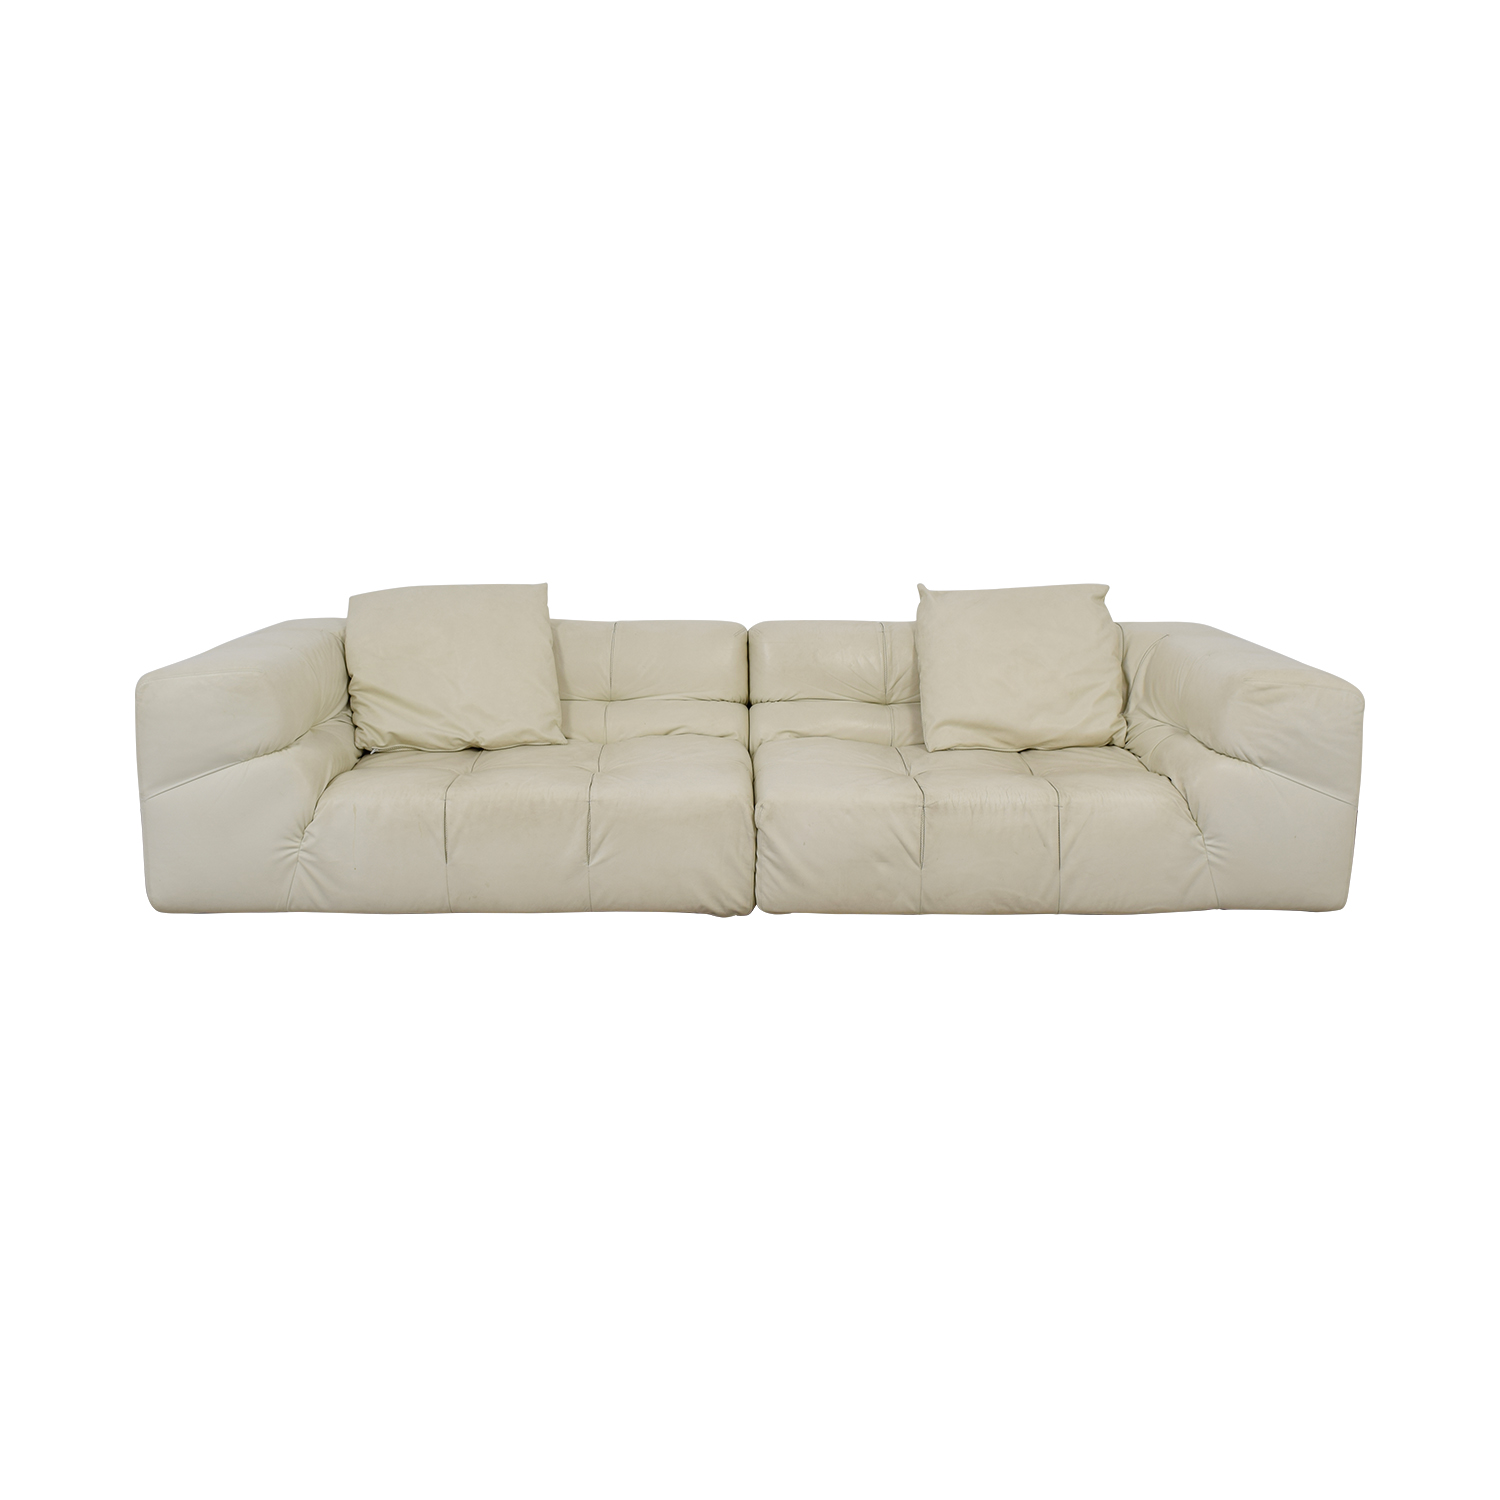 Ligne Roset Ligne Roset White Tufted Leather Couch dimensions